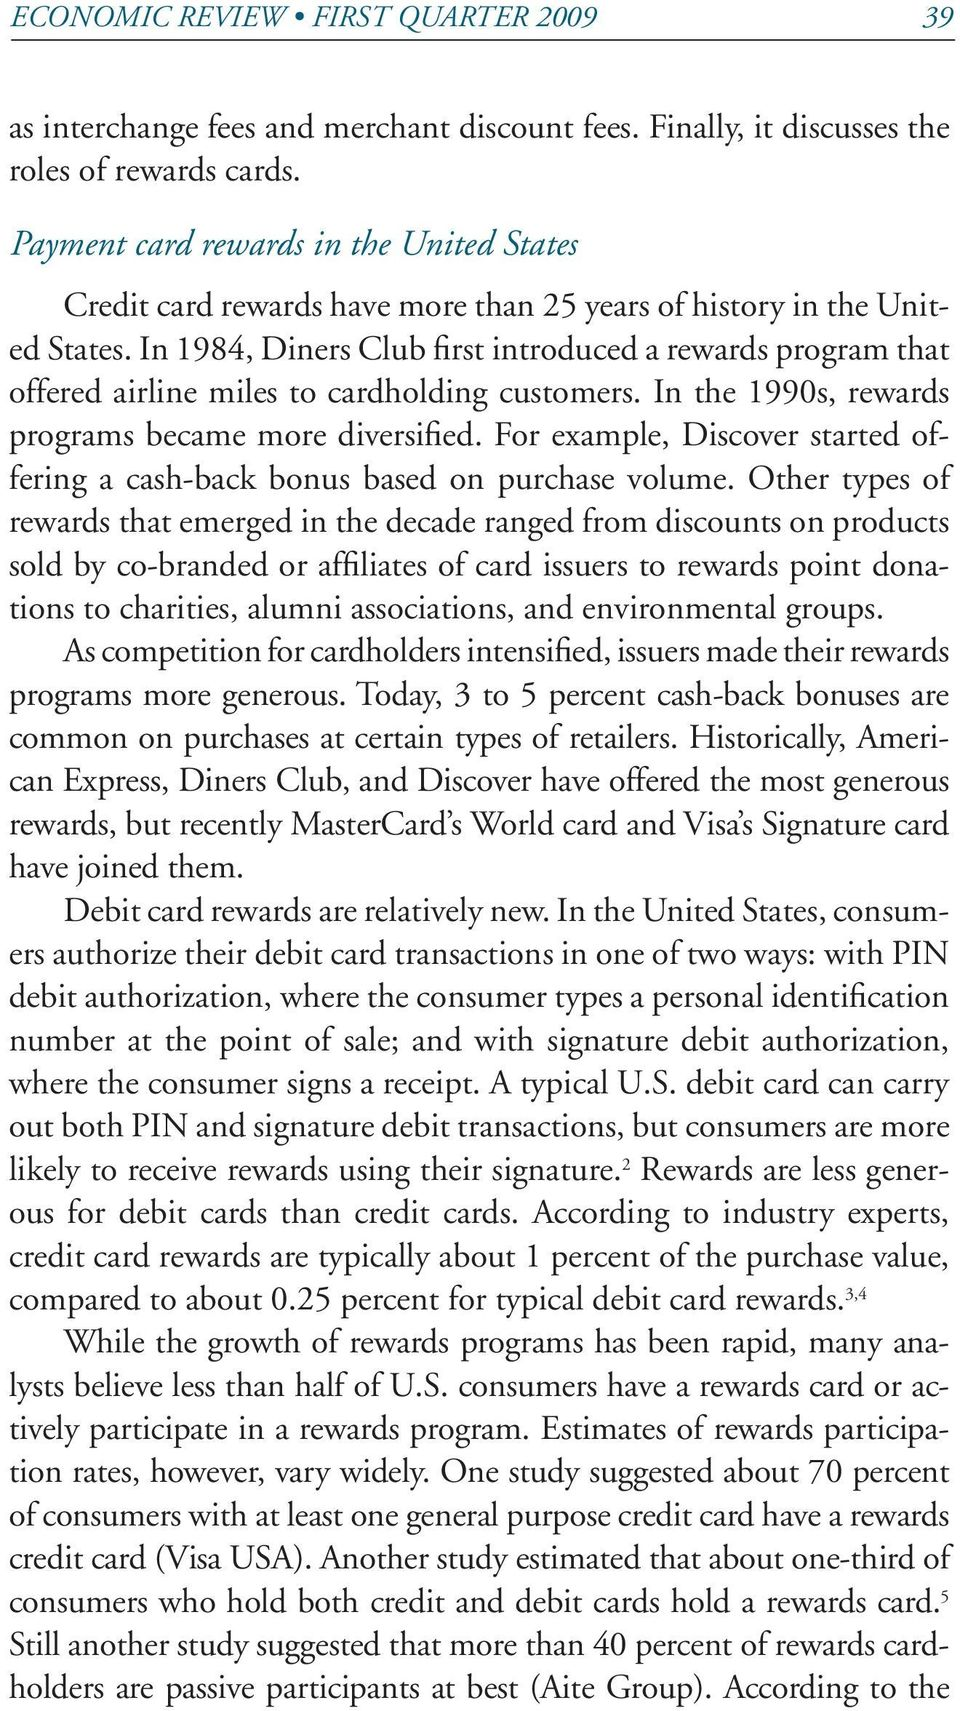 In 1984, Diners Club first introduced a rewards program that offered airline miles to cardholding customers. In the 1990s, rewards programs became more diversified.